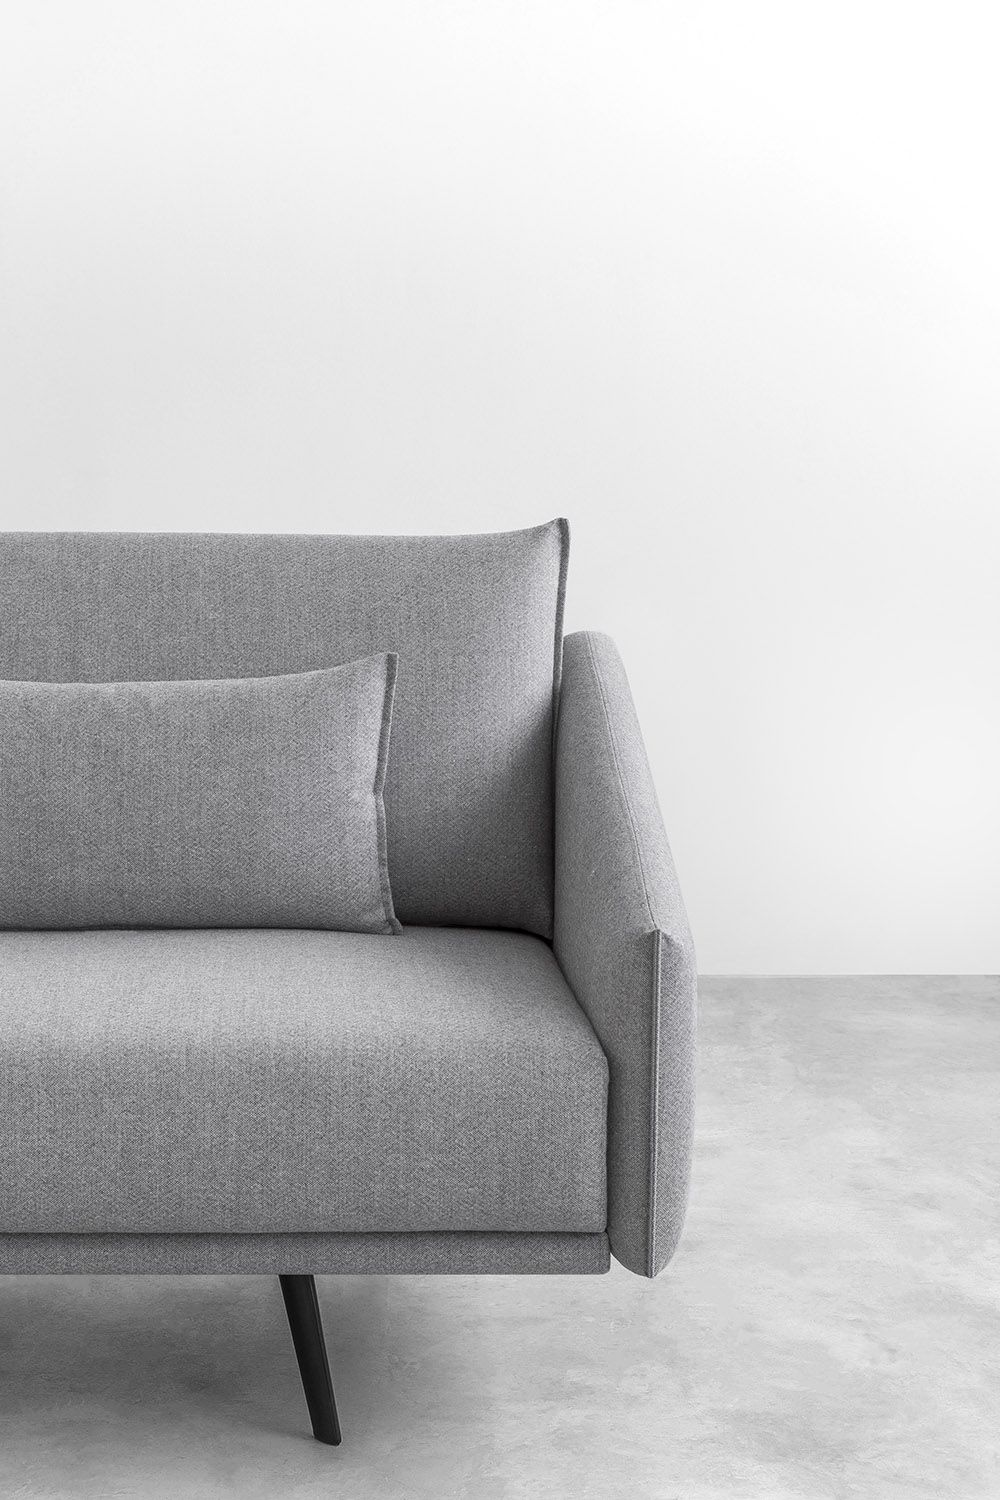 New Stua Costura Sofa Catalogue In Pdf Format Www Stua Com Pdf  # Muebles Farucho